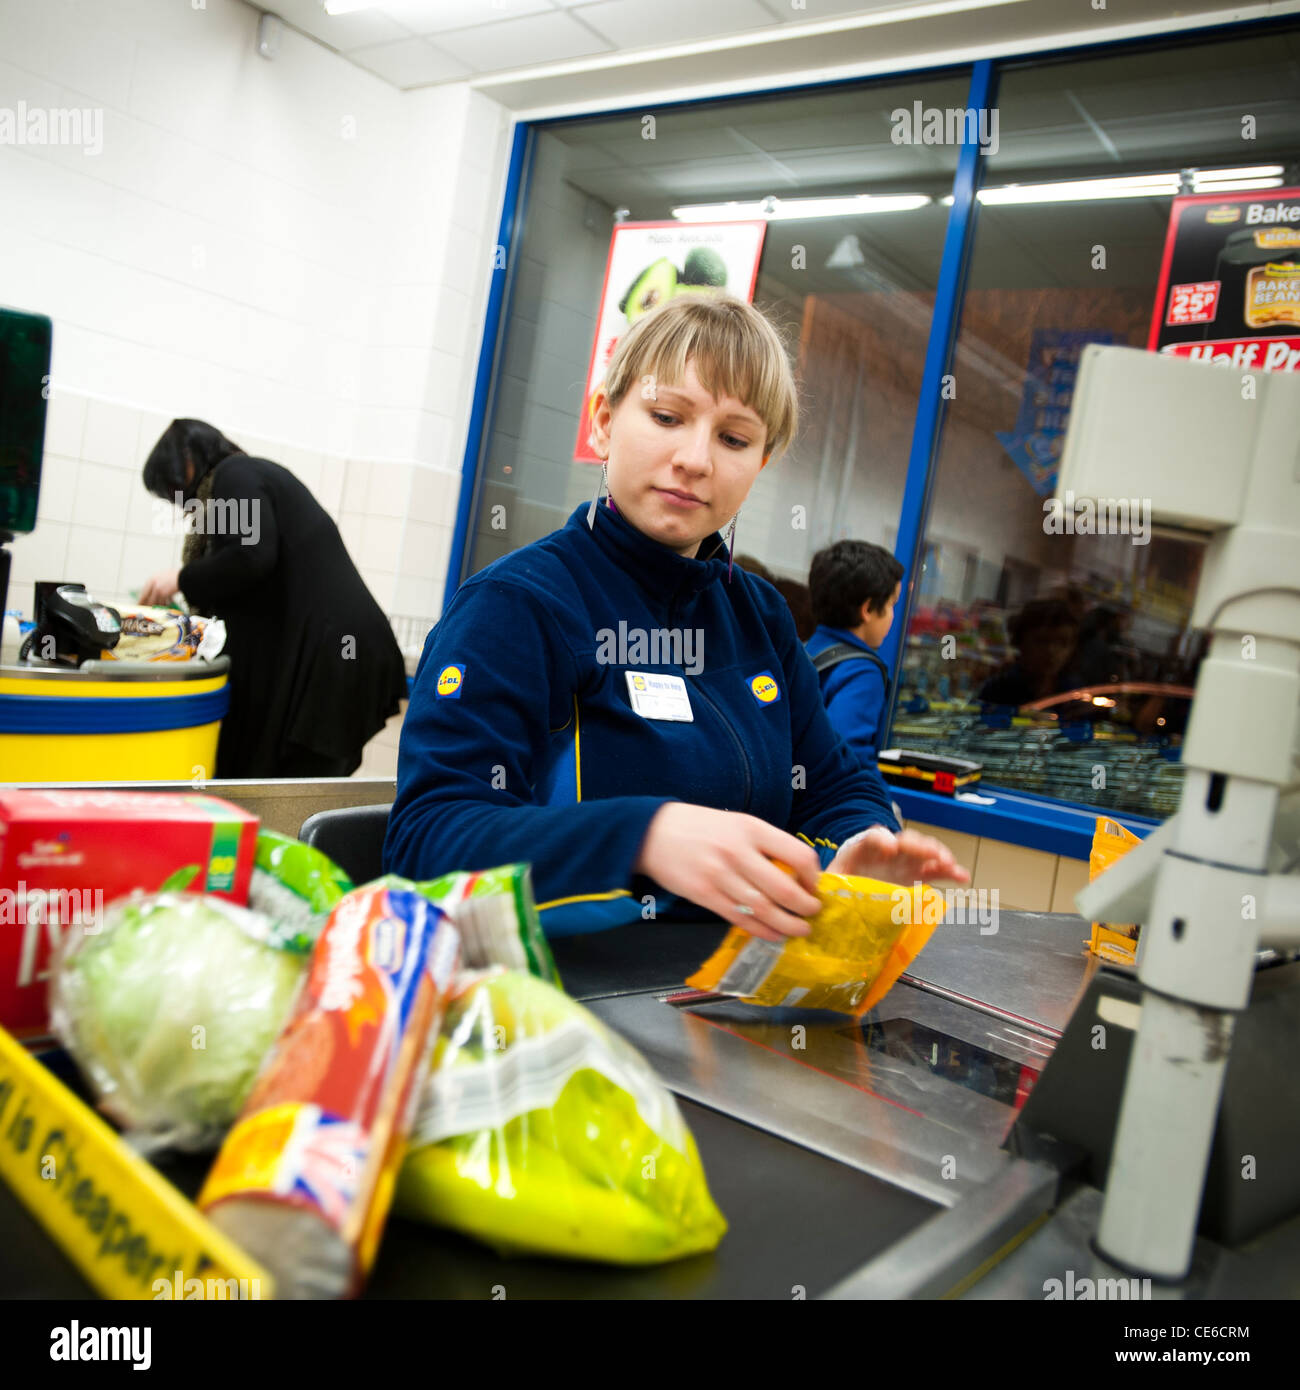 A woman check out worker at a branch of lidl discount supermarket stock photo 43167704 alamy - Mobel discount kassel ...